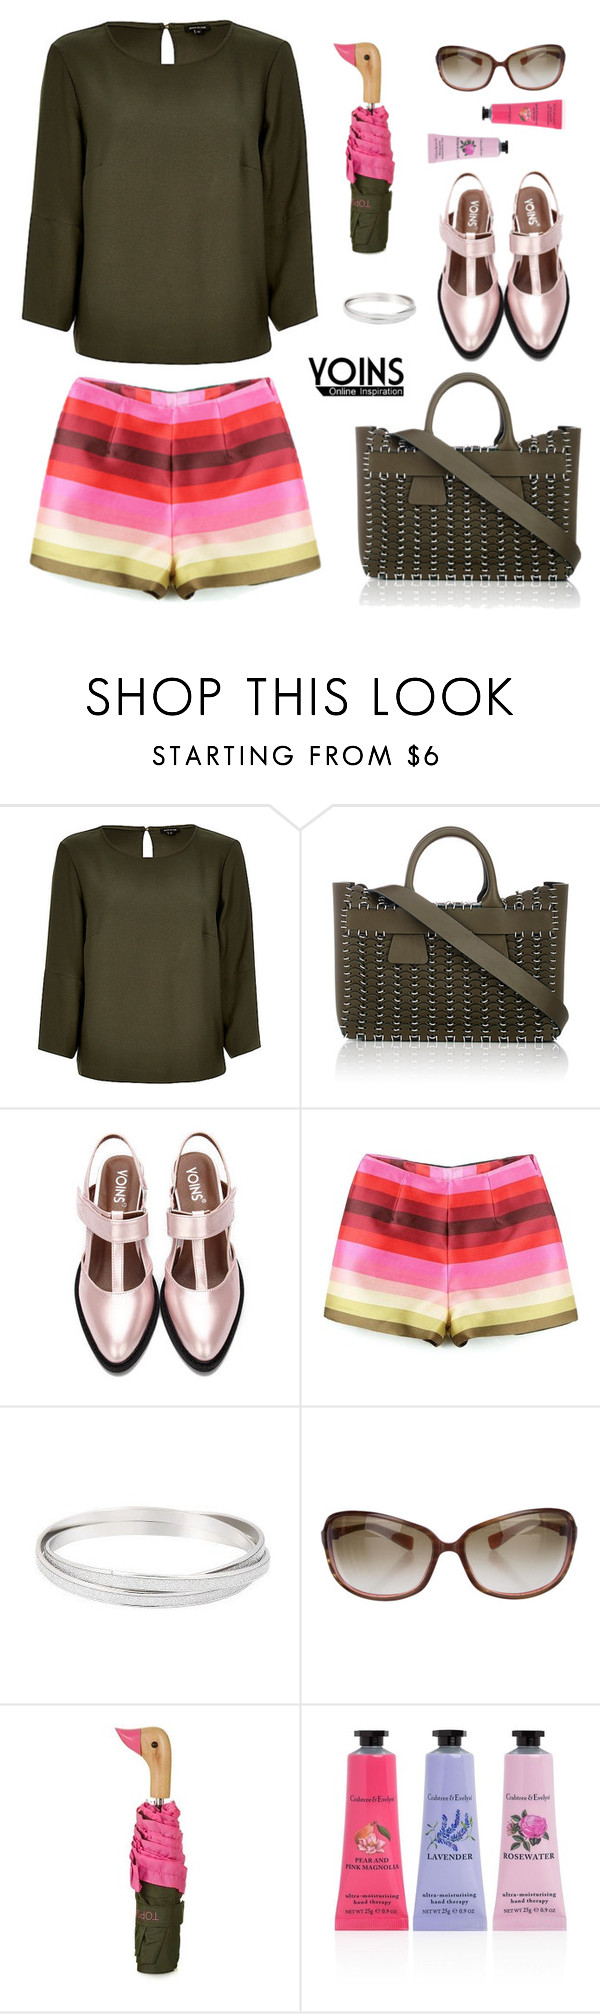 """""""Yoins quatre"""" by natcatt ❤ liked on Polyvore featuring Paco Rabanne, Oliver Peoples, Topshop, Crabtree & Evelyn, yoins, yoinscollection and loveyoins"""